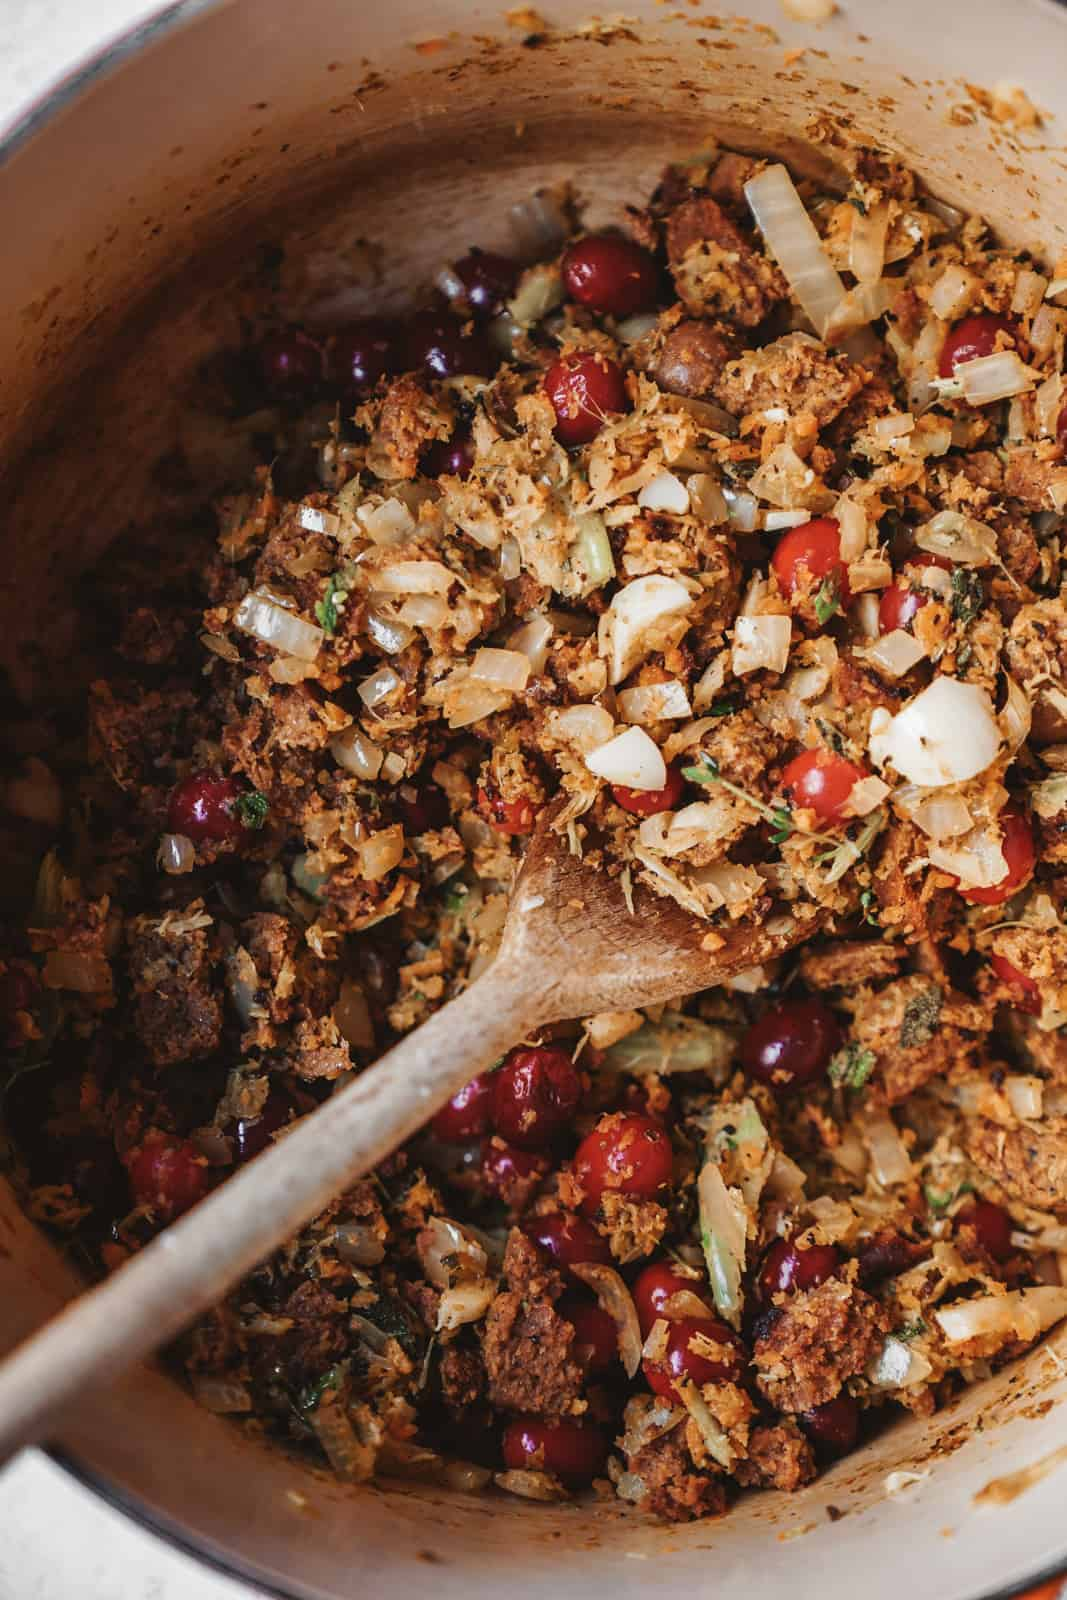 Vegan stuffing with cranberries